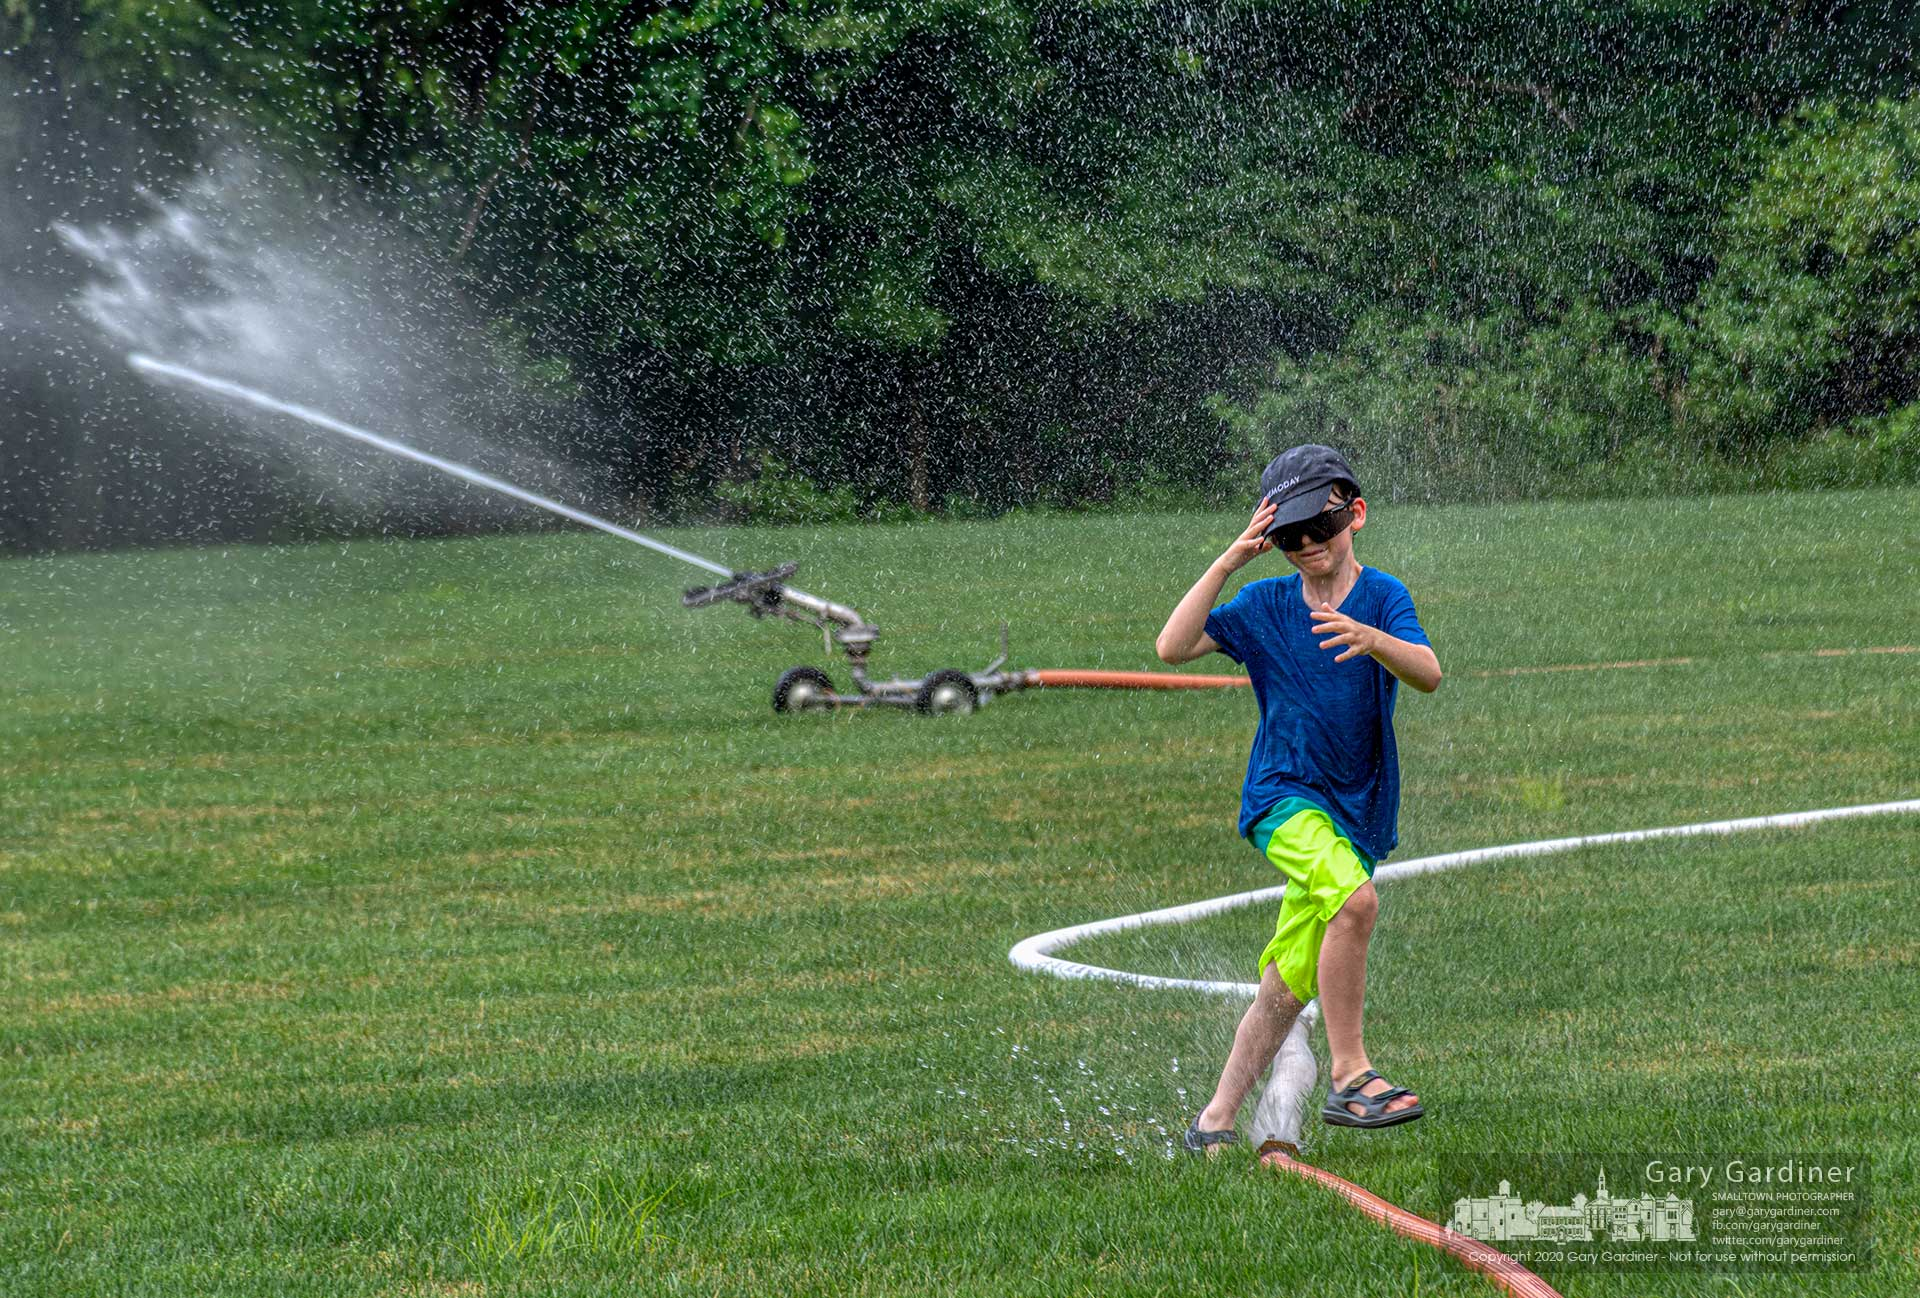 A young boy splashes through spray from a leaky hose fitting and the spray from a sprinkler on one of the practice fields at Otterbein University. My Final Photo for July 7, 2020.